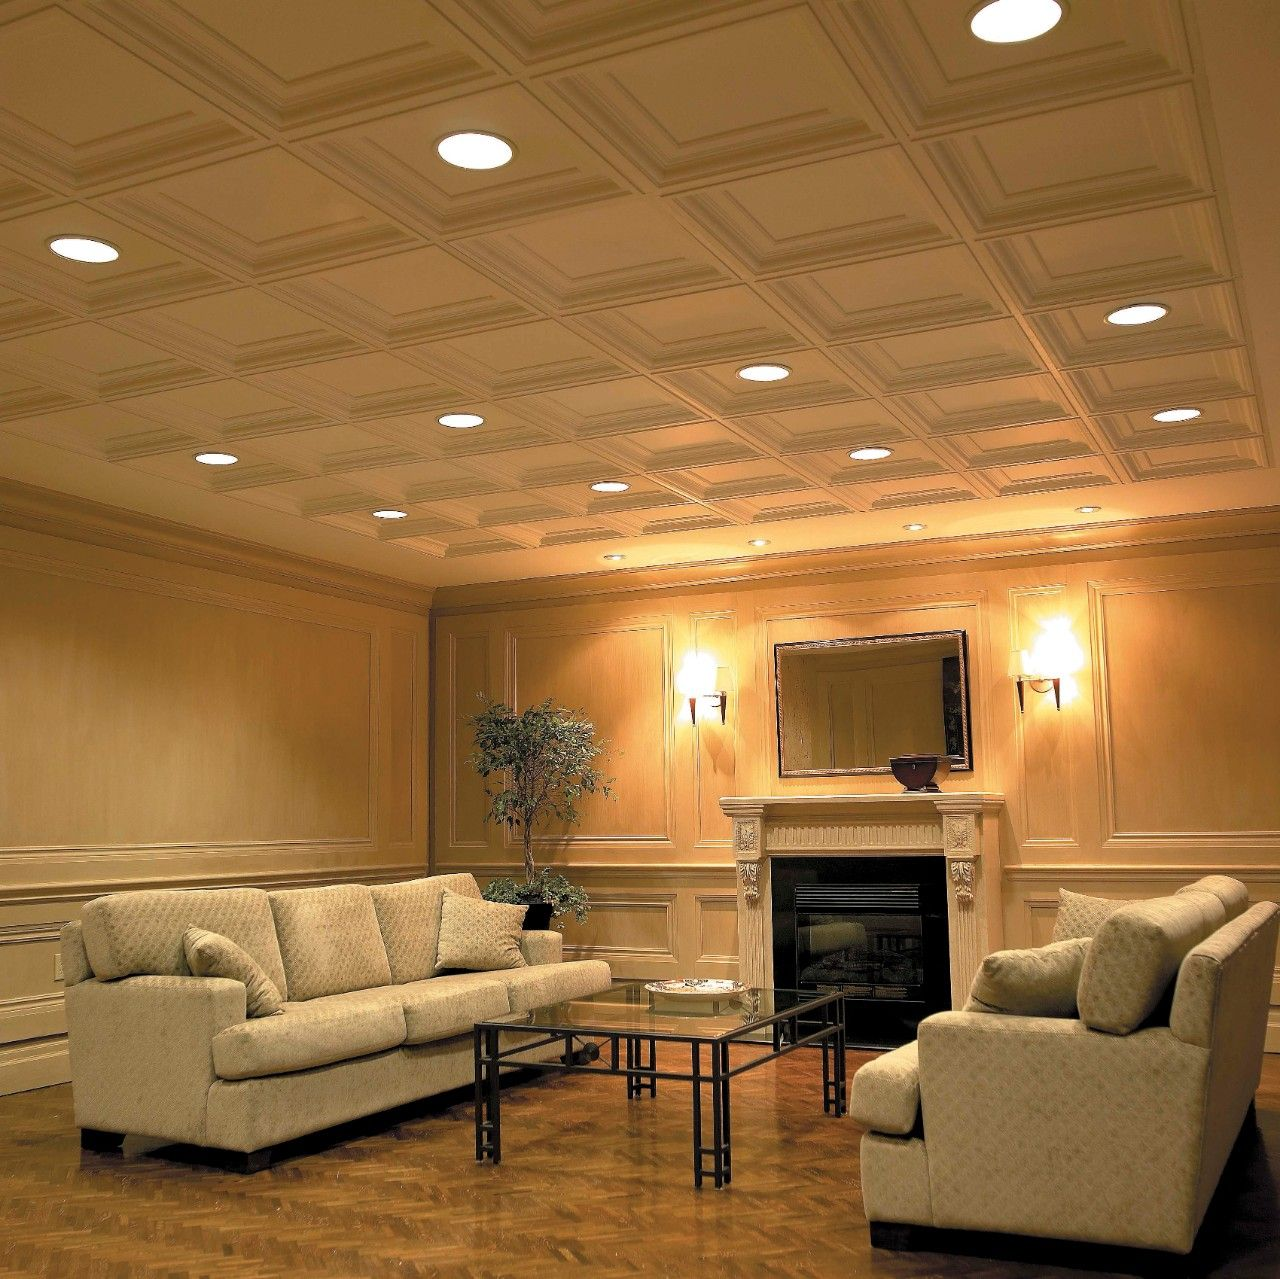 USG Elegance Coffered Ceiling Panels Make Achieving